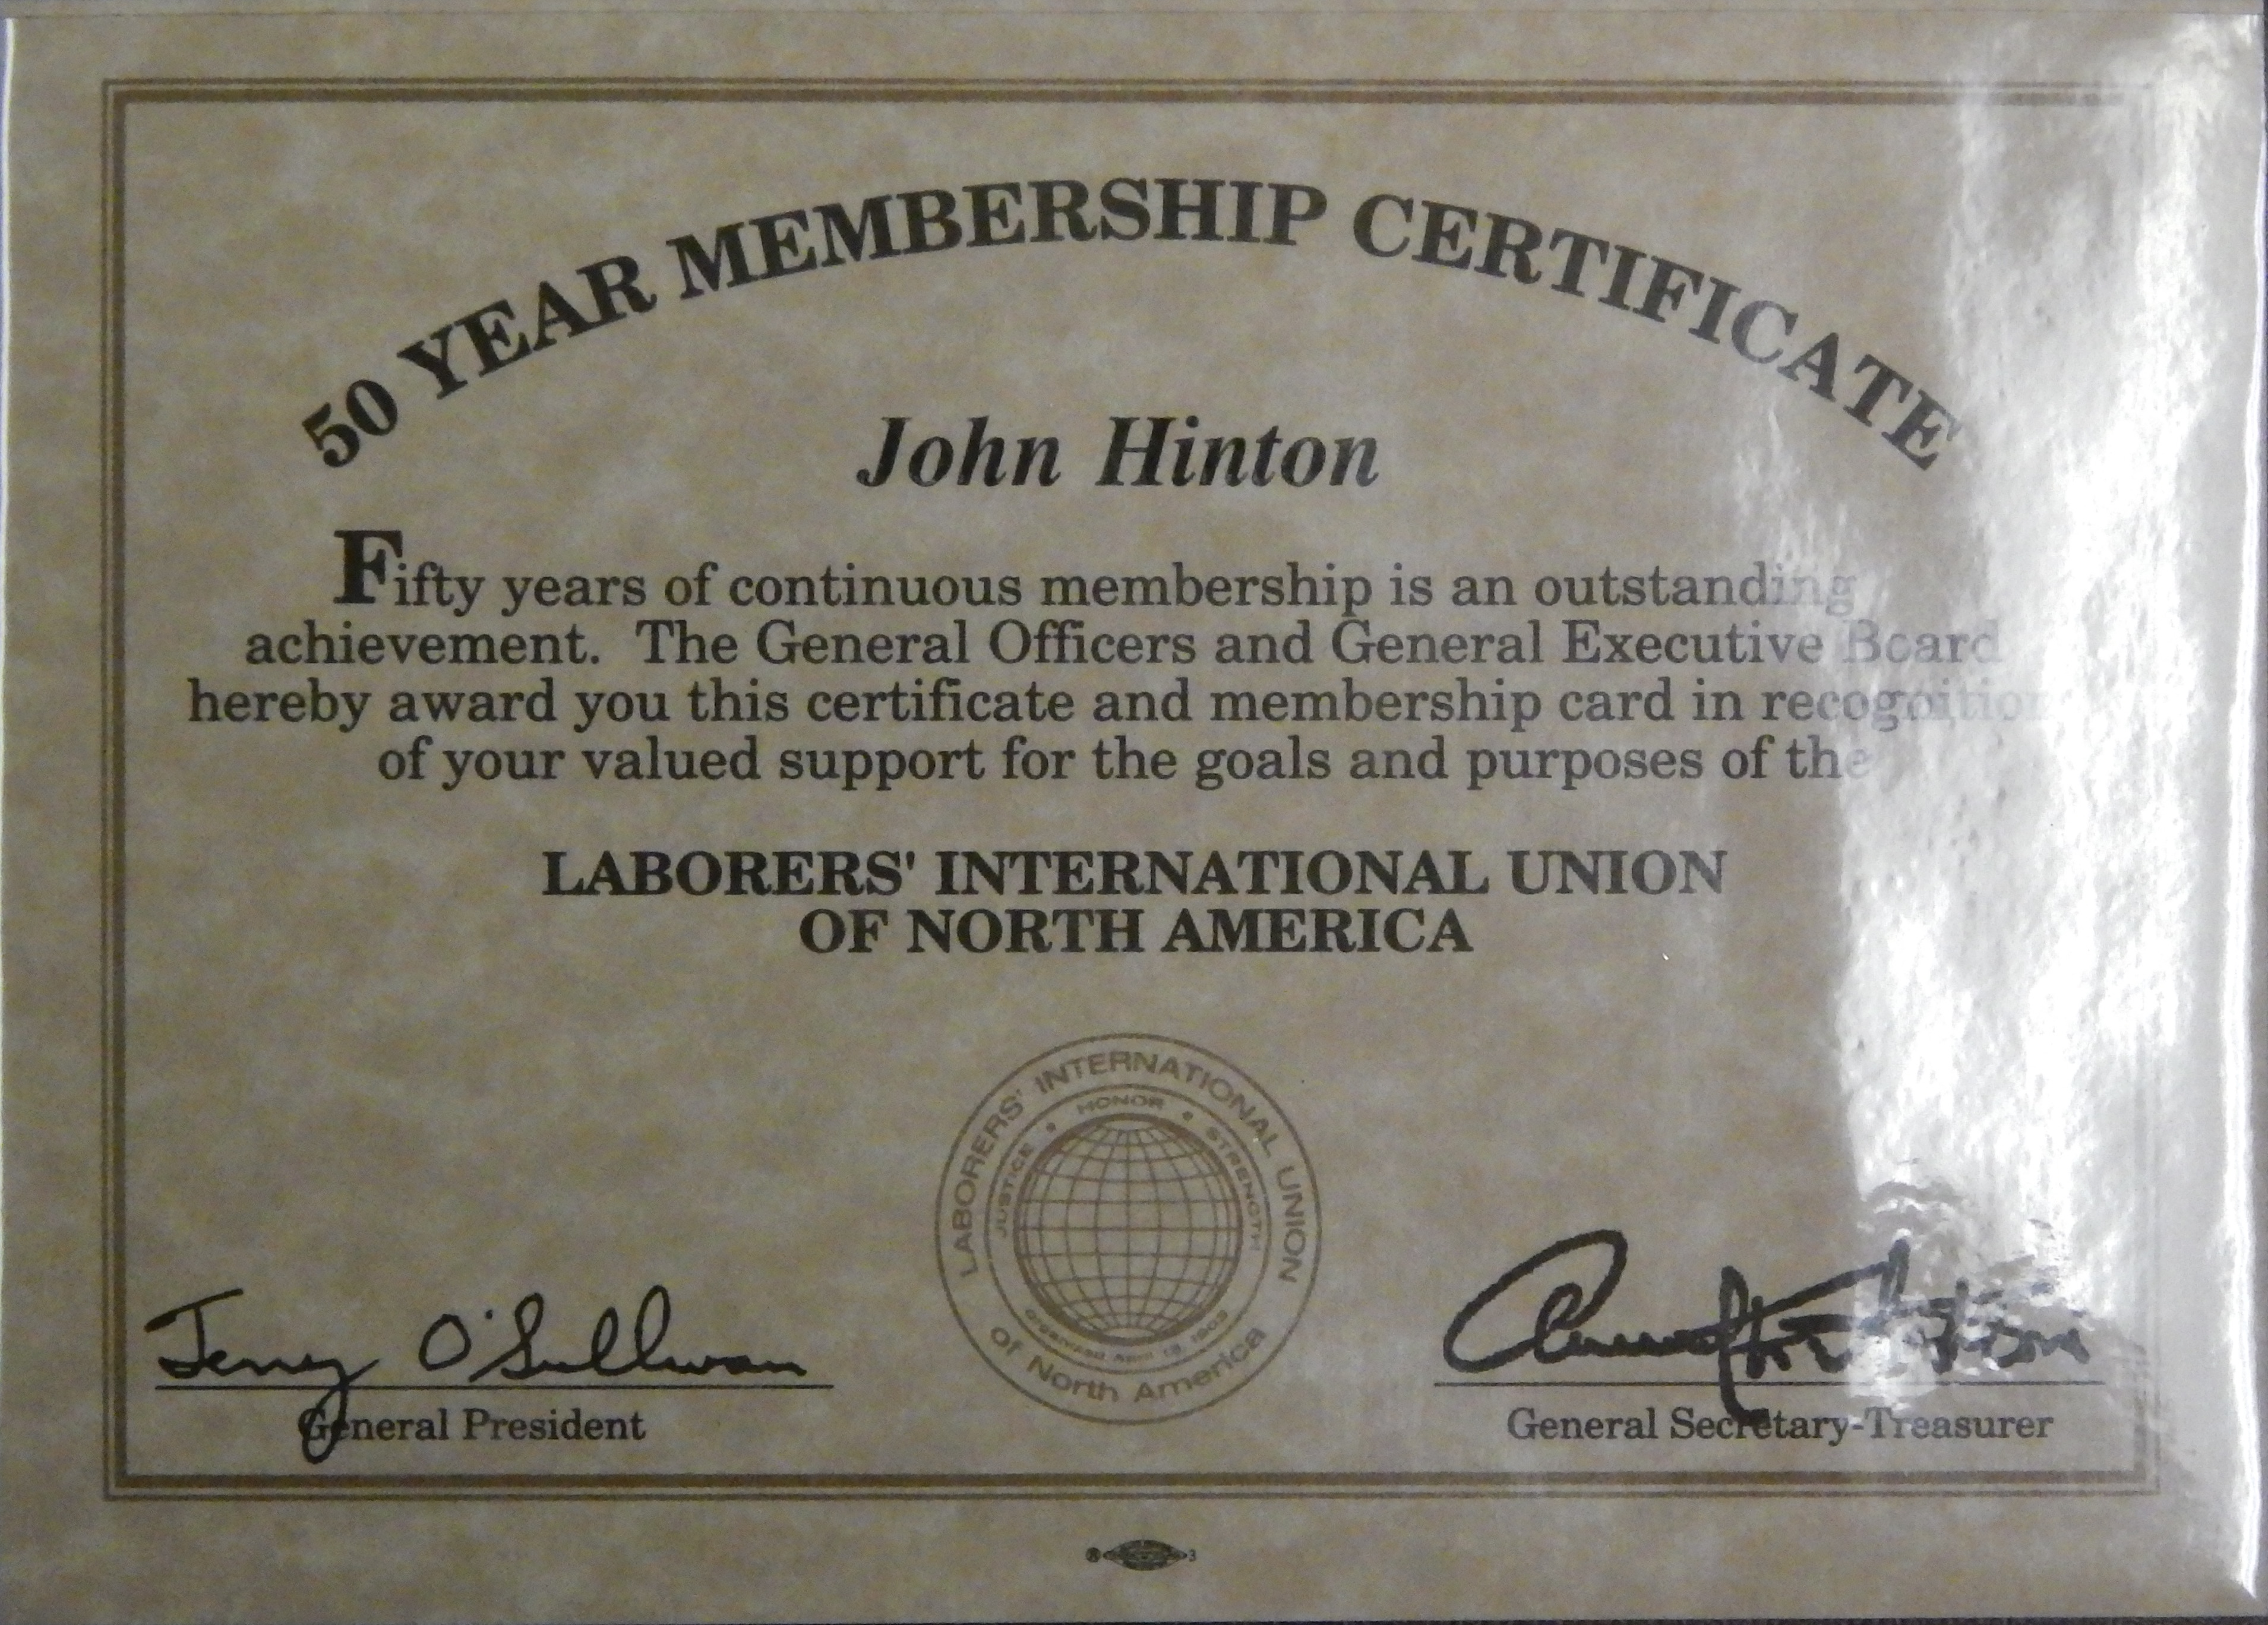 Laborers Local 332 Honors John Hinton For 50 Years of Service!